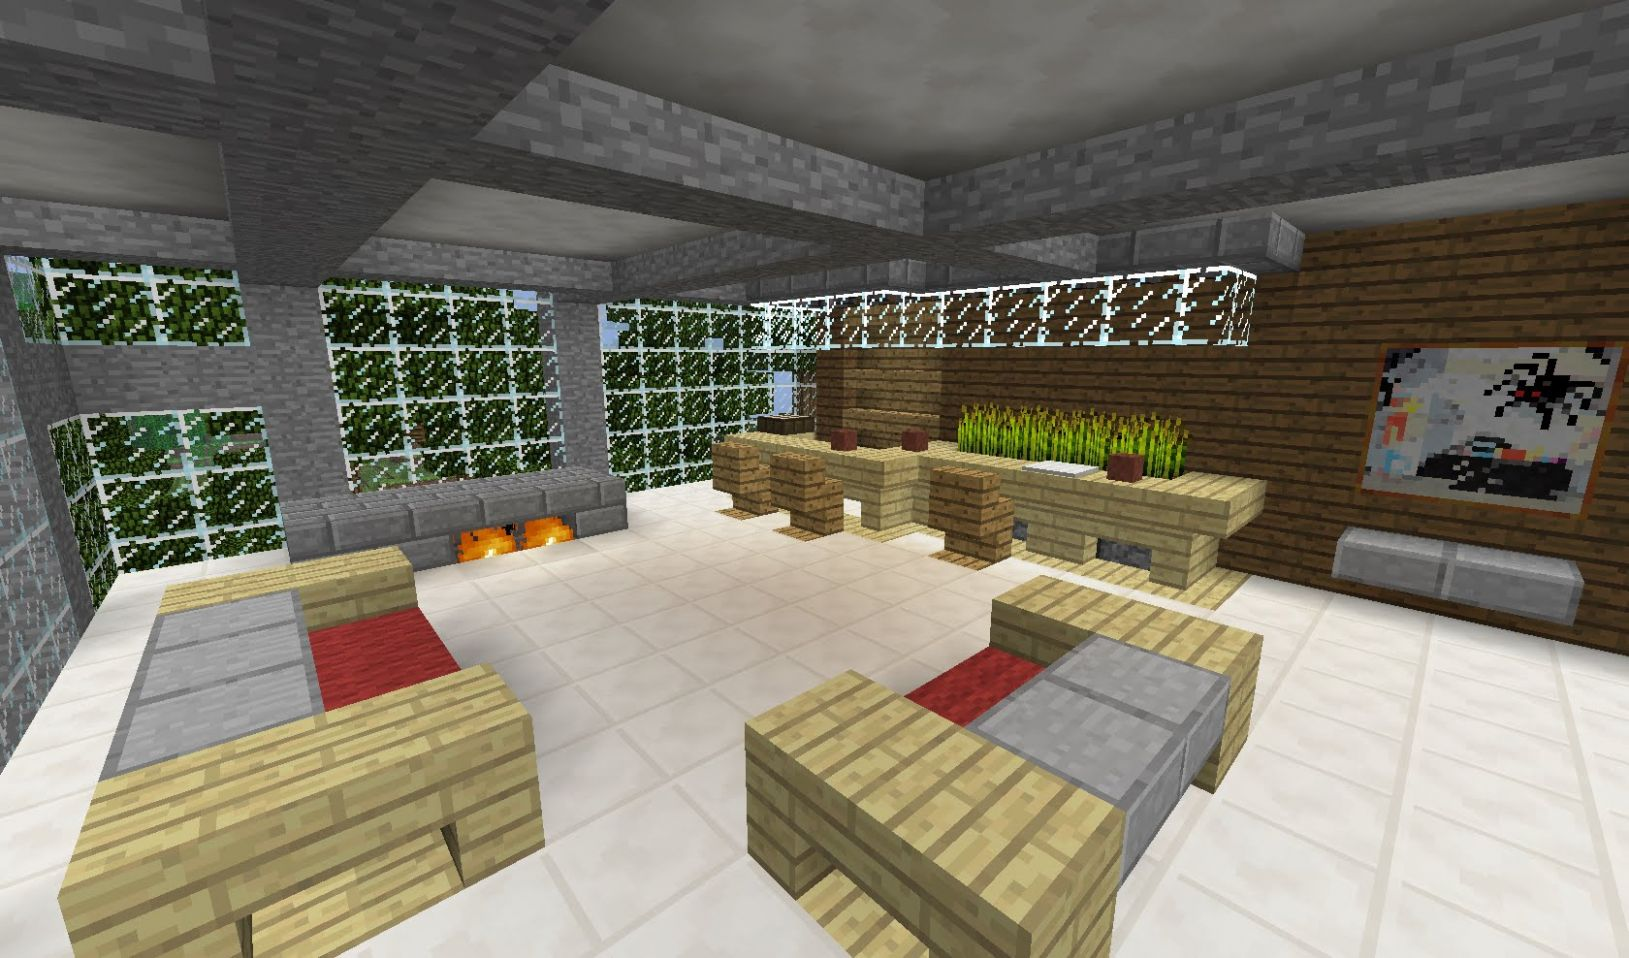 Minecraft Room Decor to Make your Room like Minecraft Games ..